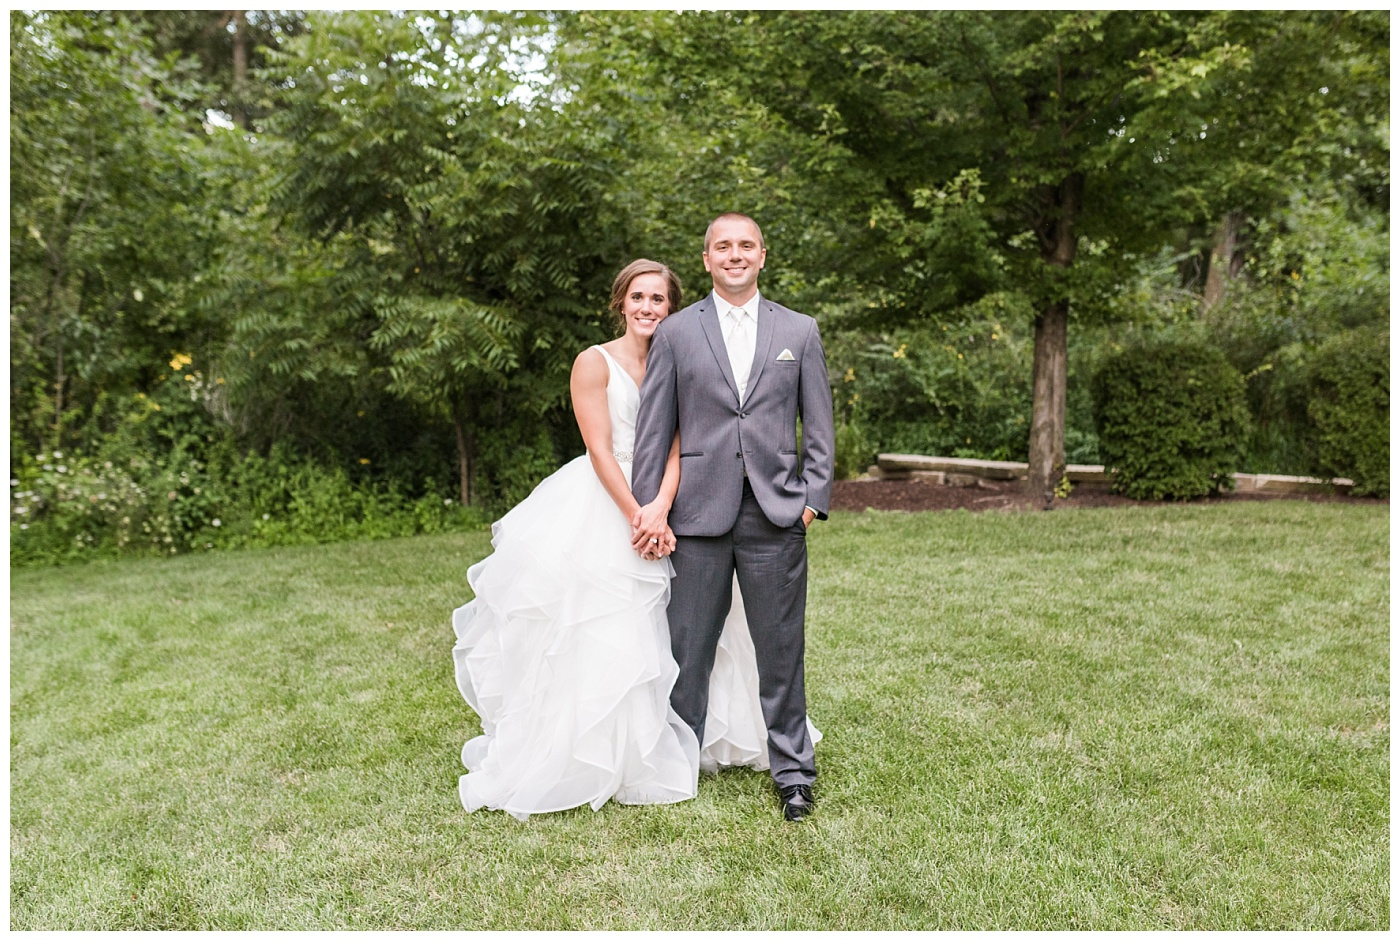 Stephanie Marie Photography Newman Catholic Center Ceremony Bella Sala Reception Tiffin Iowa City Wedding Photographer Chelsey Justin Meyers_0048.jpg